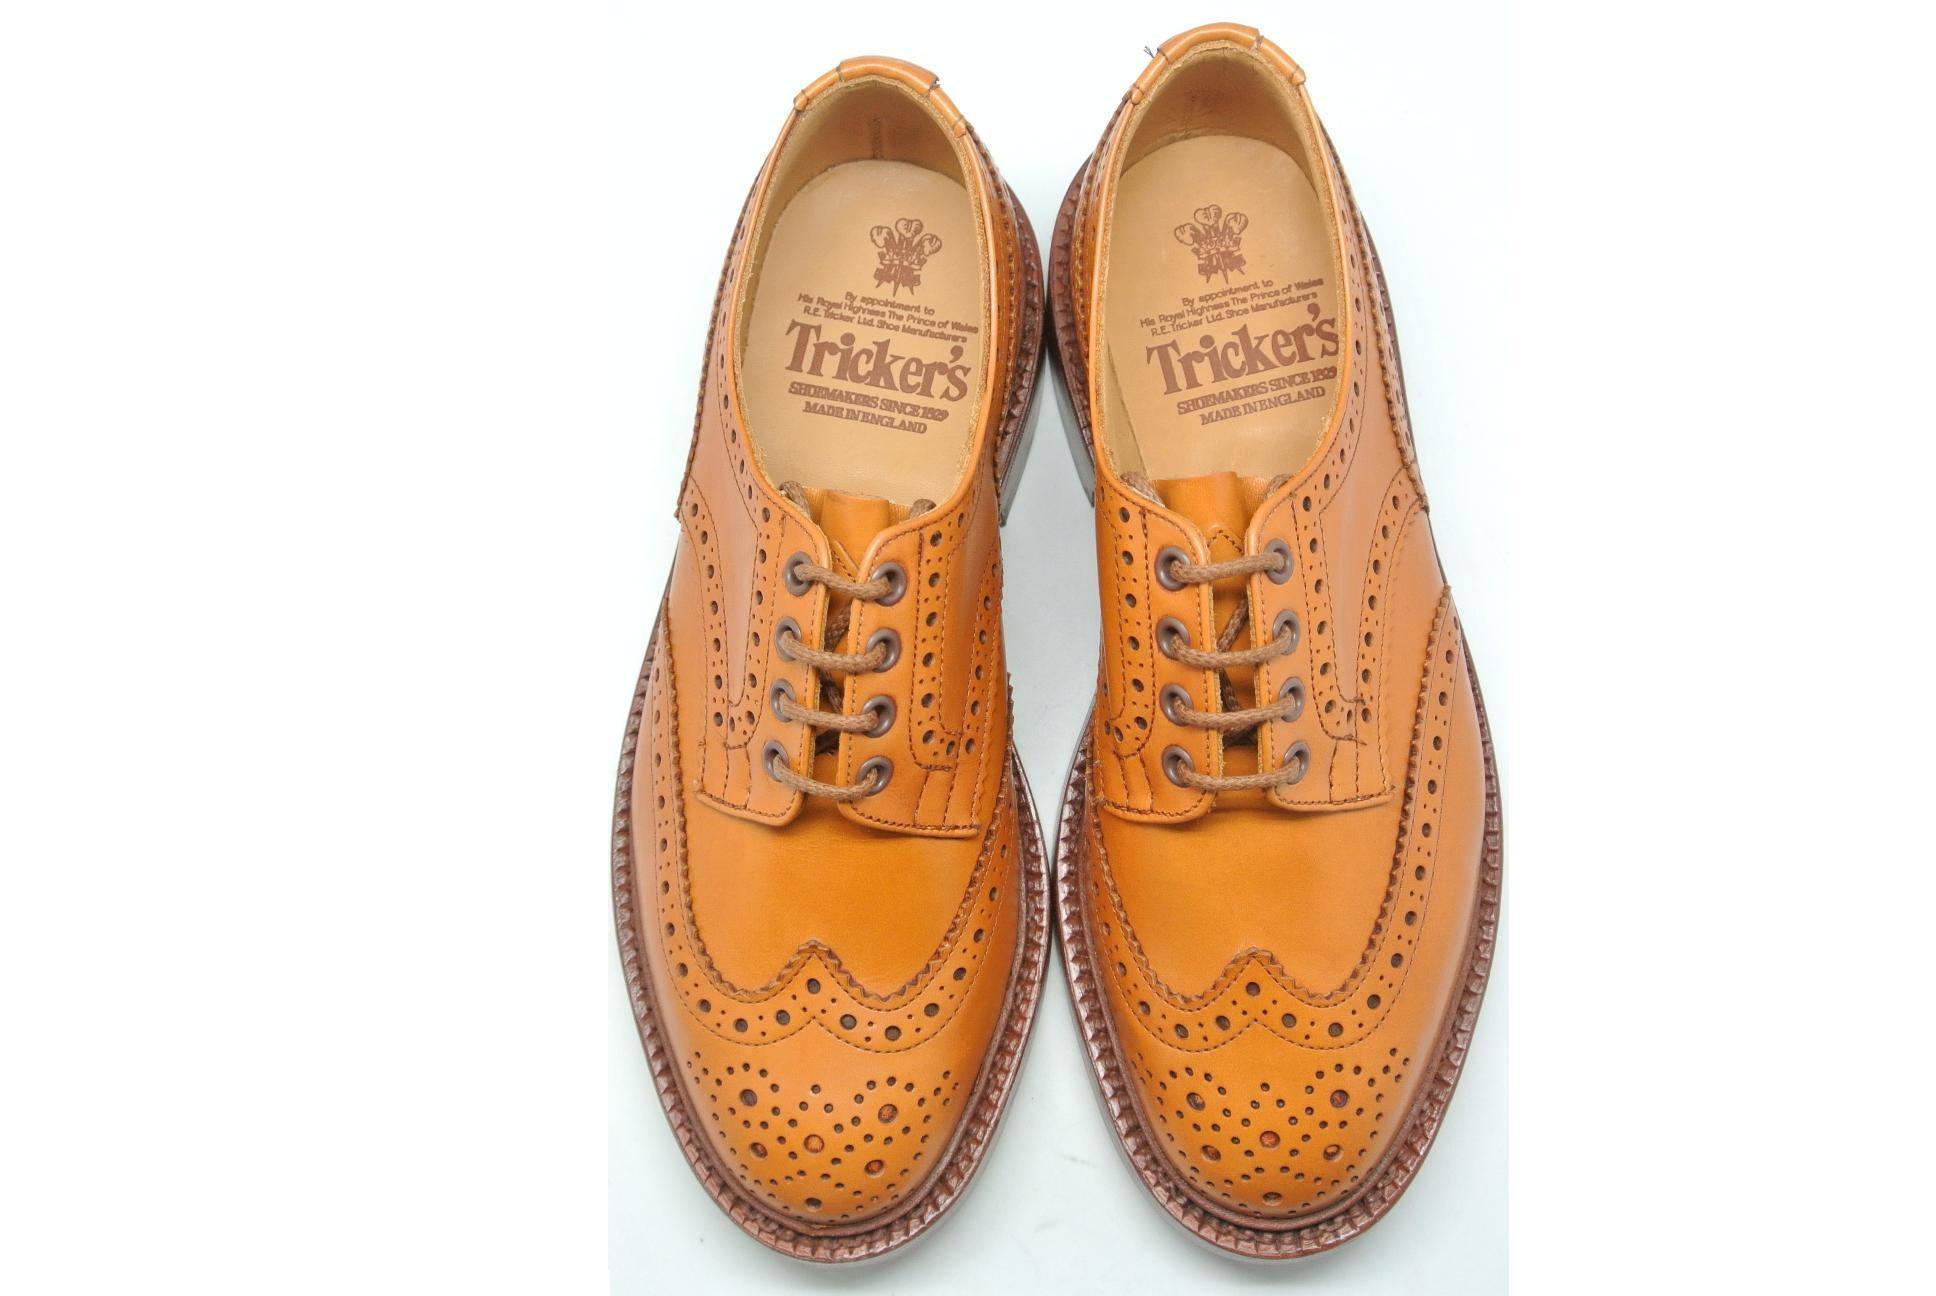 shop allen edmonds tricker's